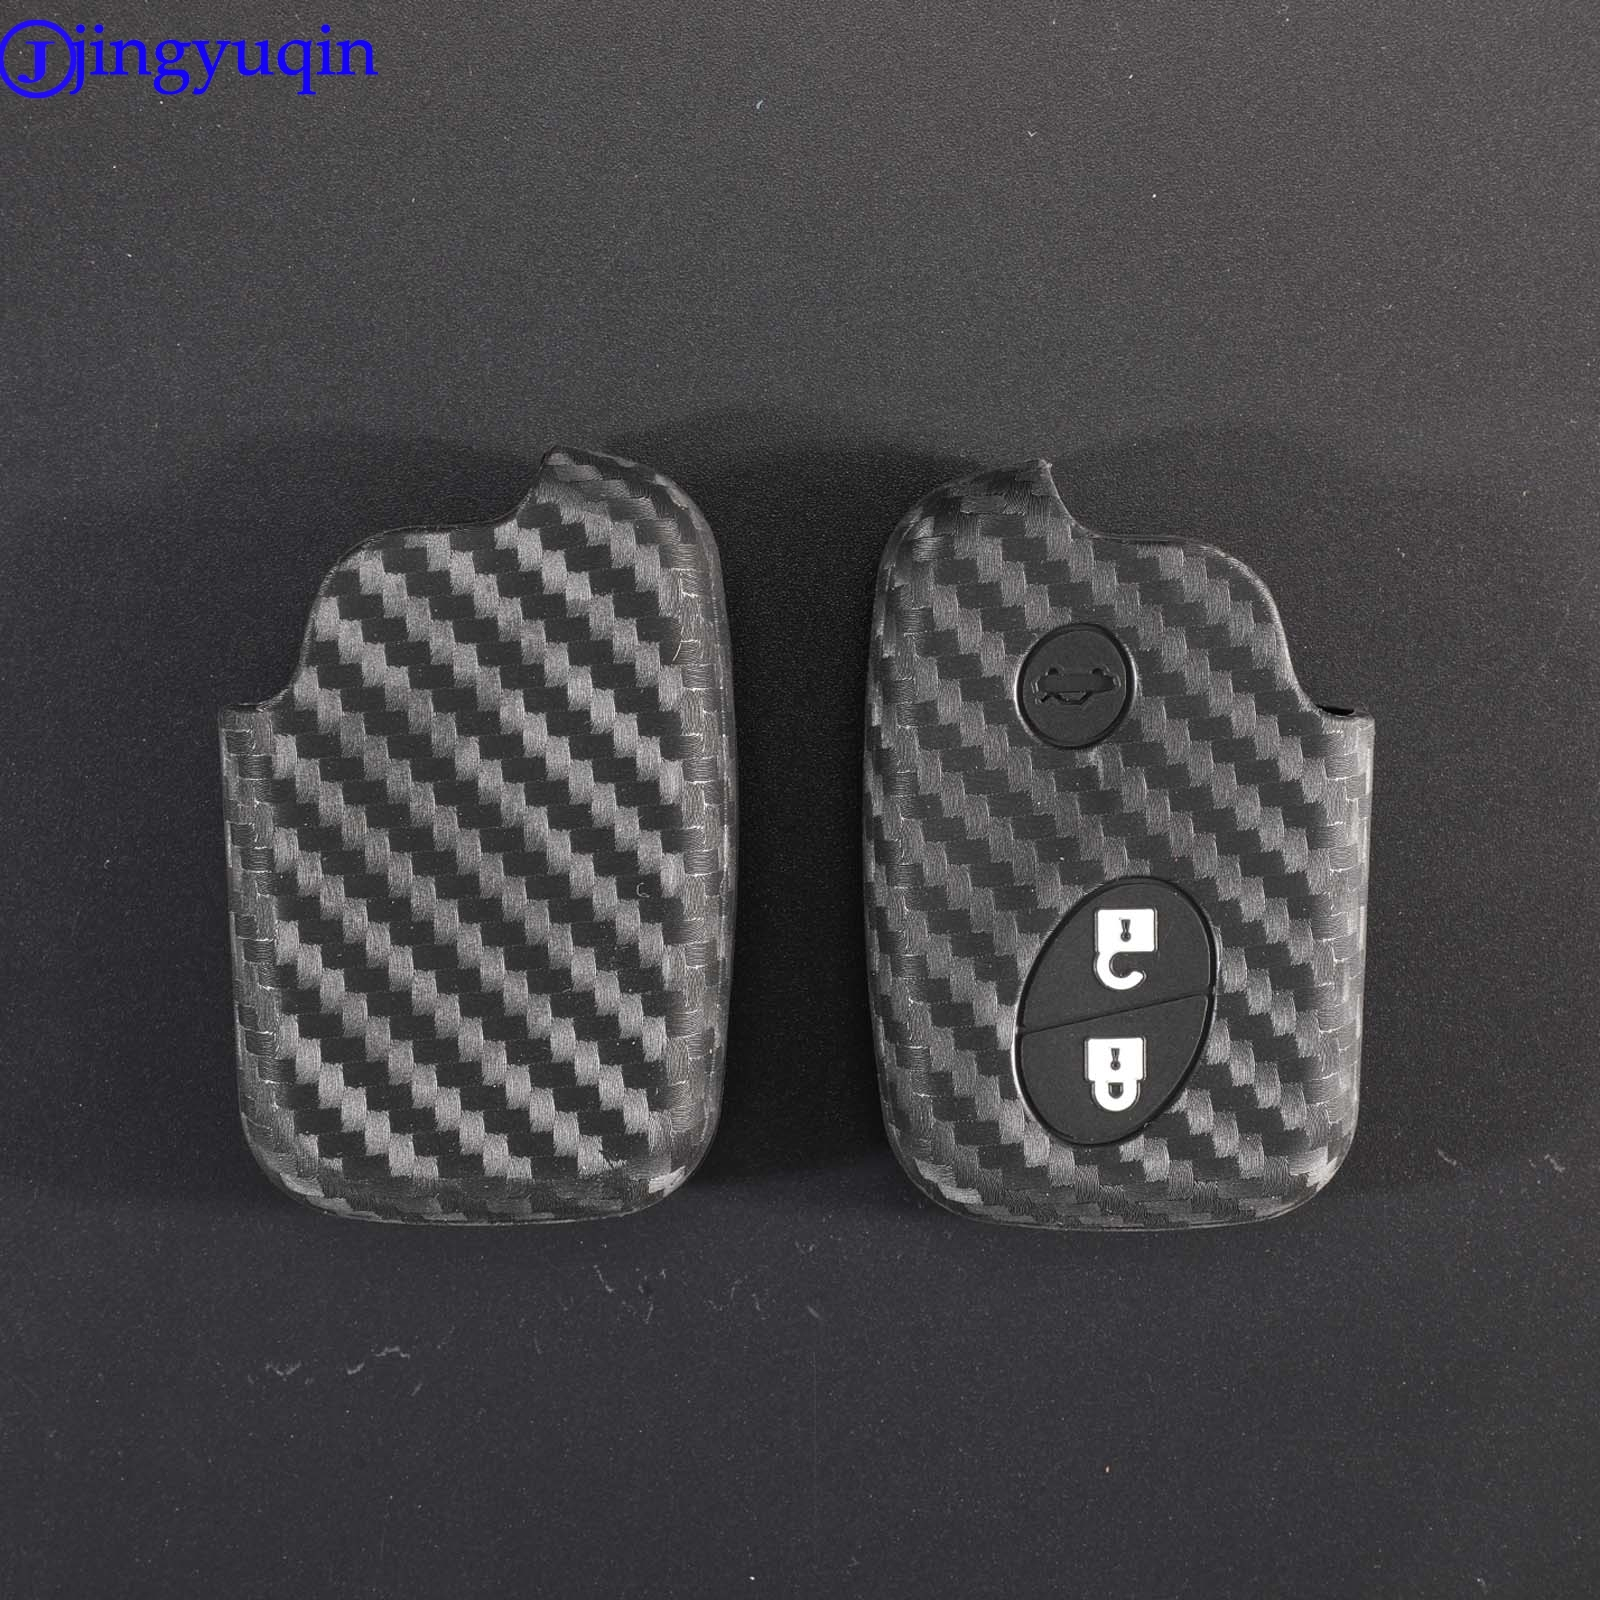 jingyuqin Carbon Fiber Patten Silicone For <font><b>Lexus</b></font> CT200h ES 300h IS250 GX400 RX270 RX450h <font><b>RX350</b></font> LX570 Car <font><b>Key</b></font> <font><b>Case</b></font> Cover Holder image